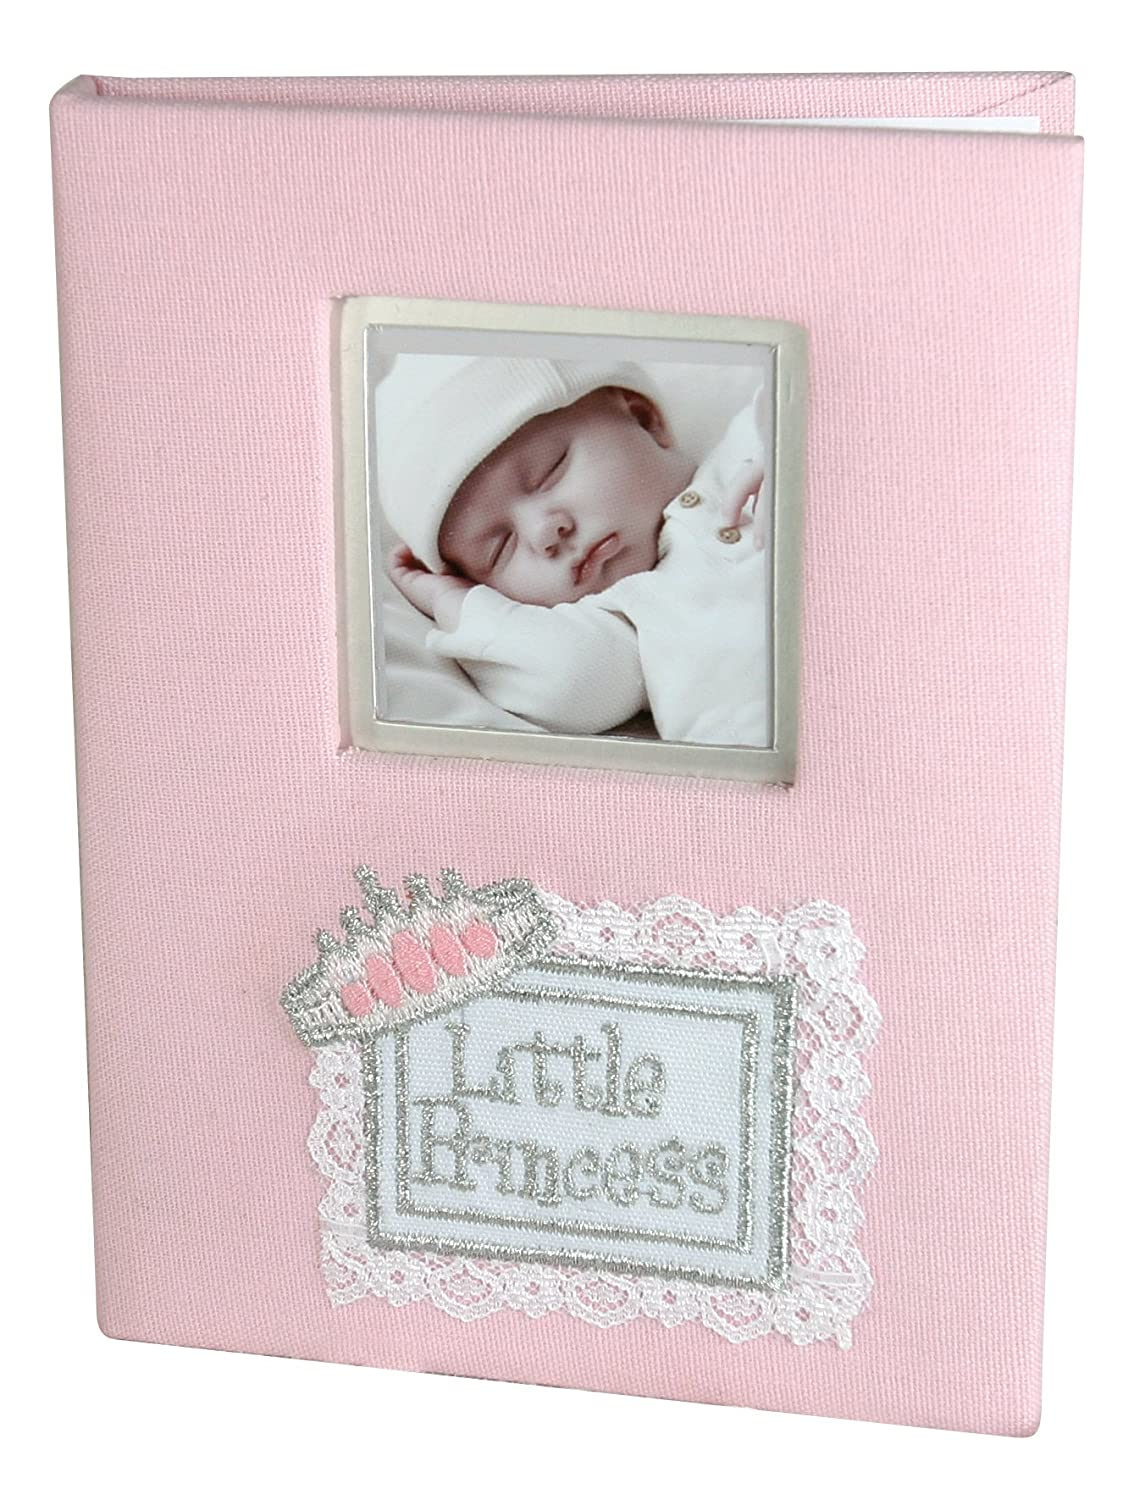 Carters Photo Album Grandmas Baby Brag Book Ebay